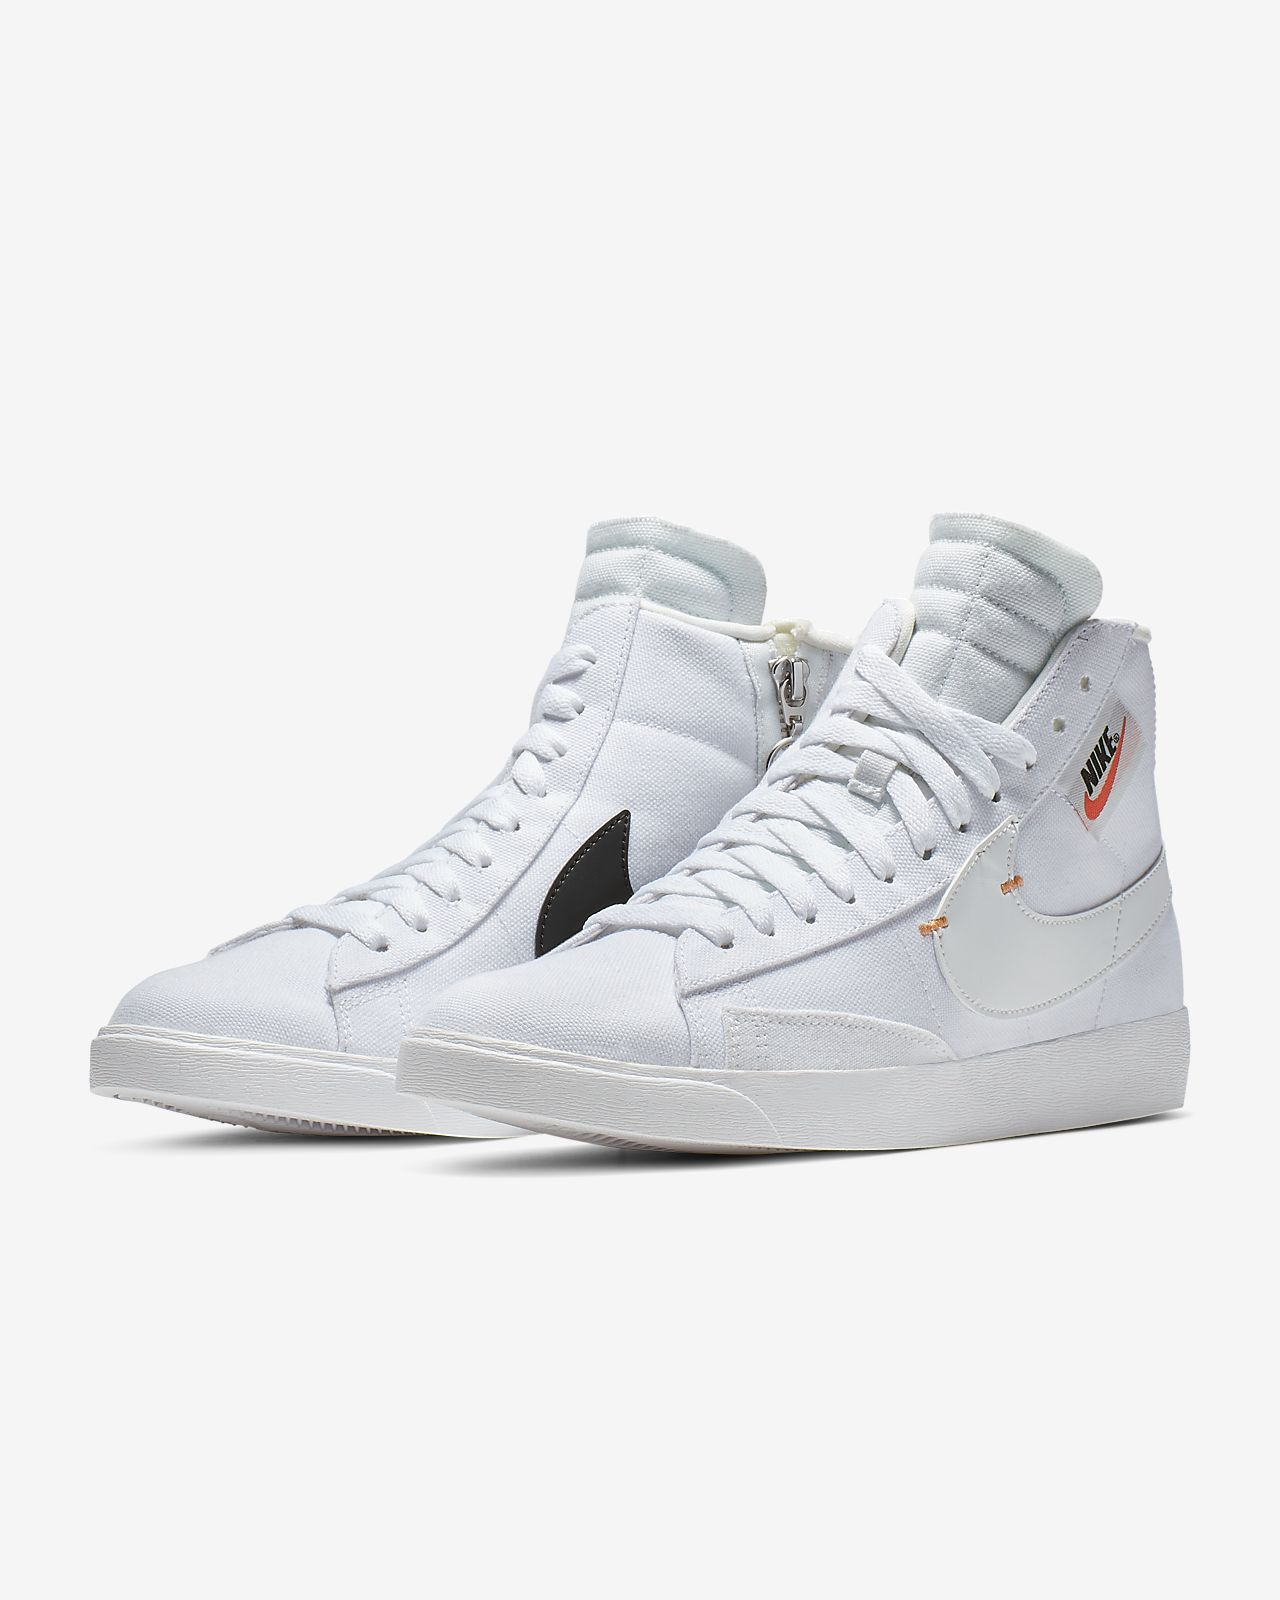 info for c5826 fd6d6 ... Nike Blazer Mid Rebel Women s Shoe